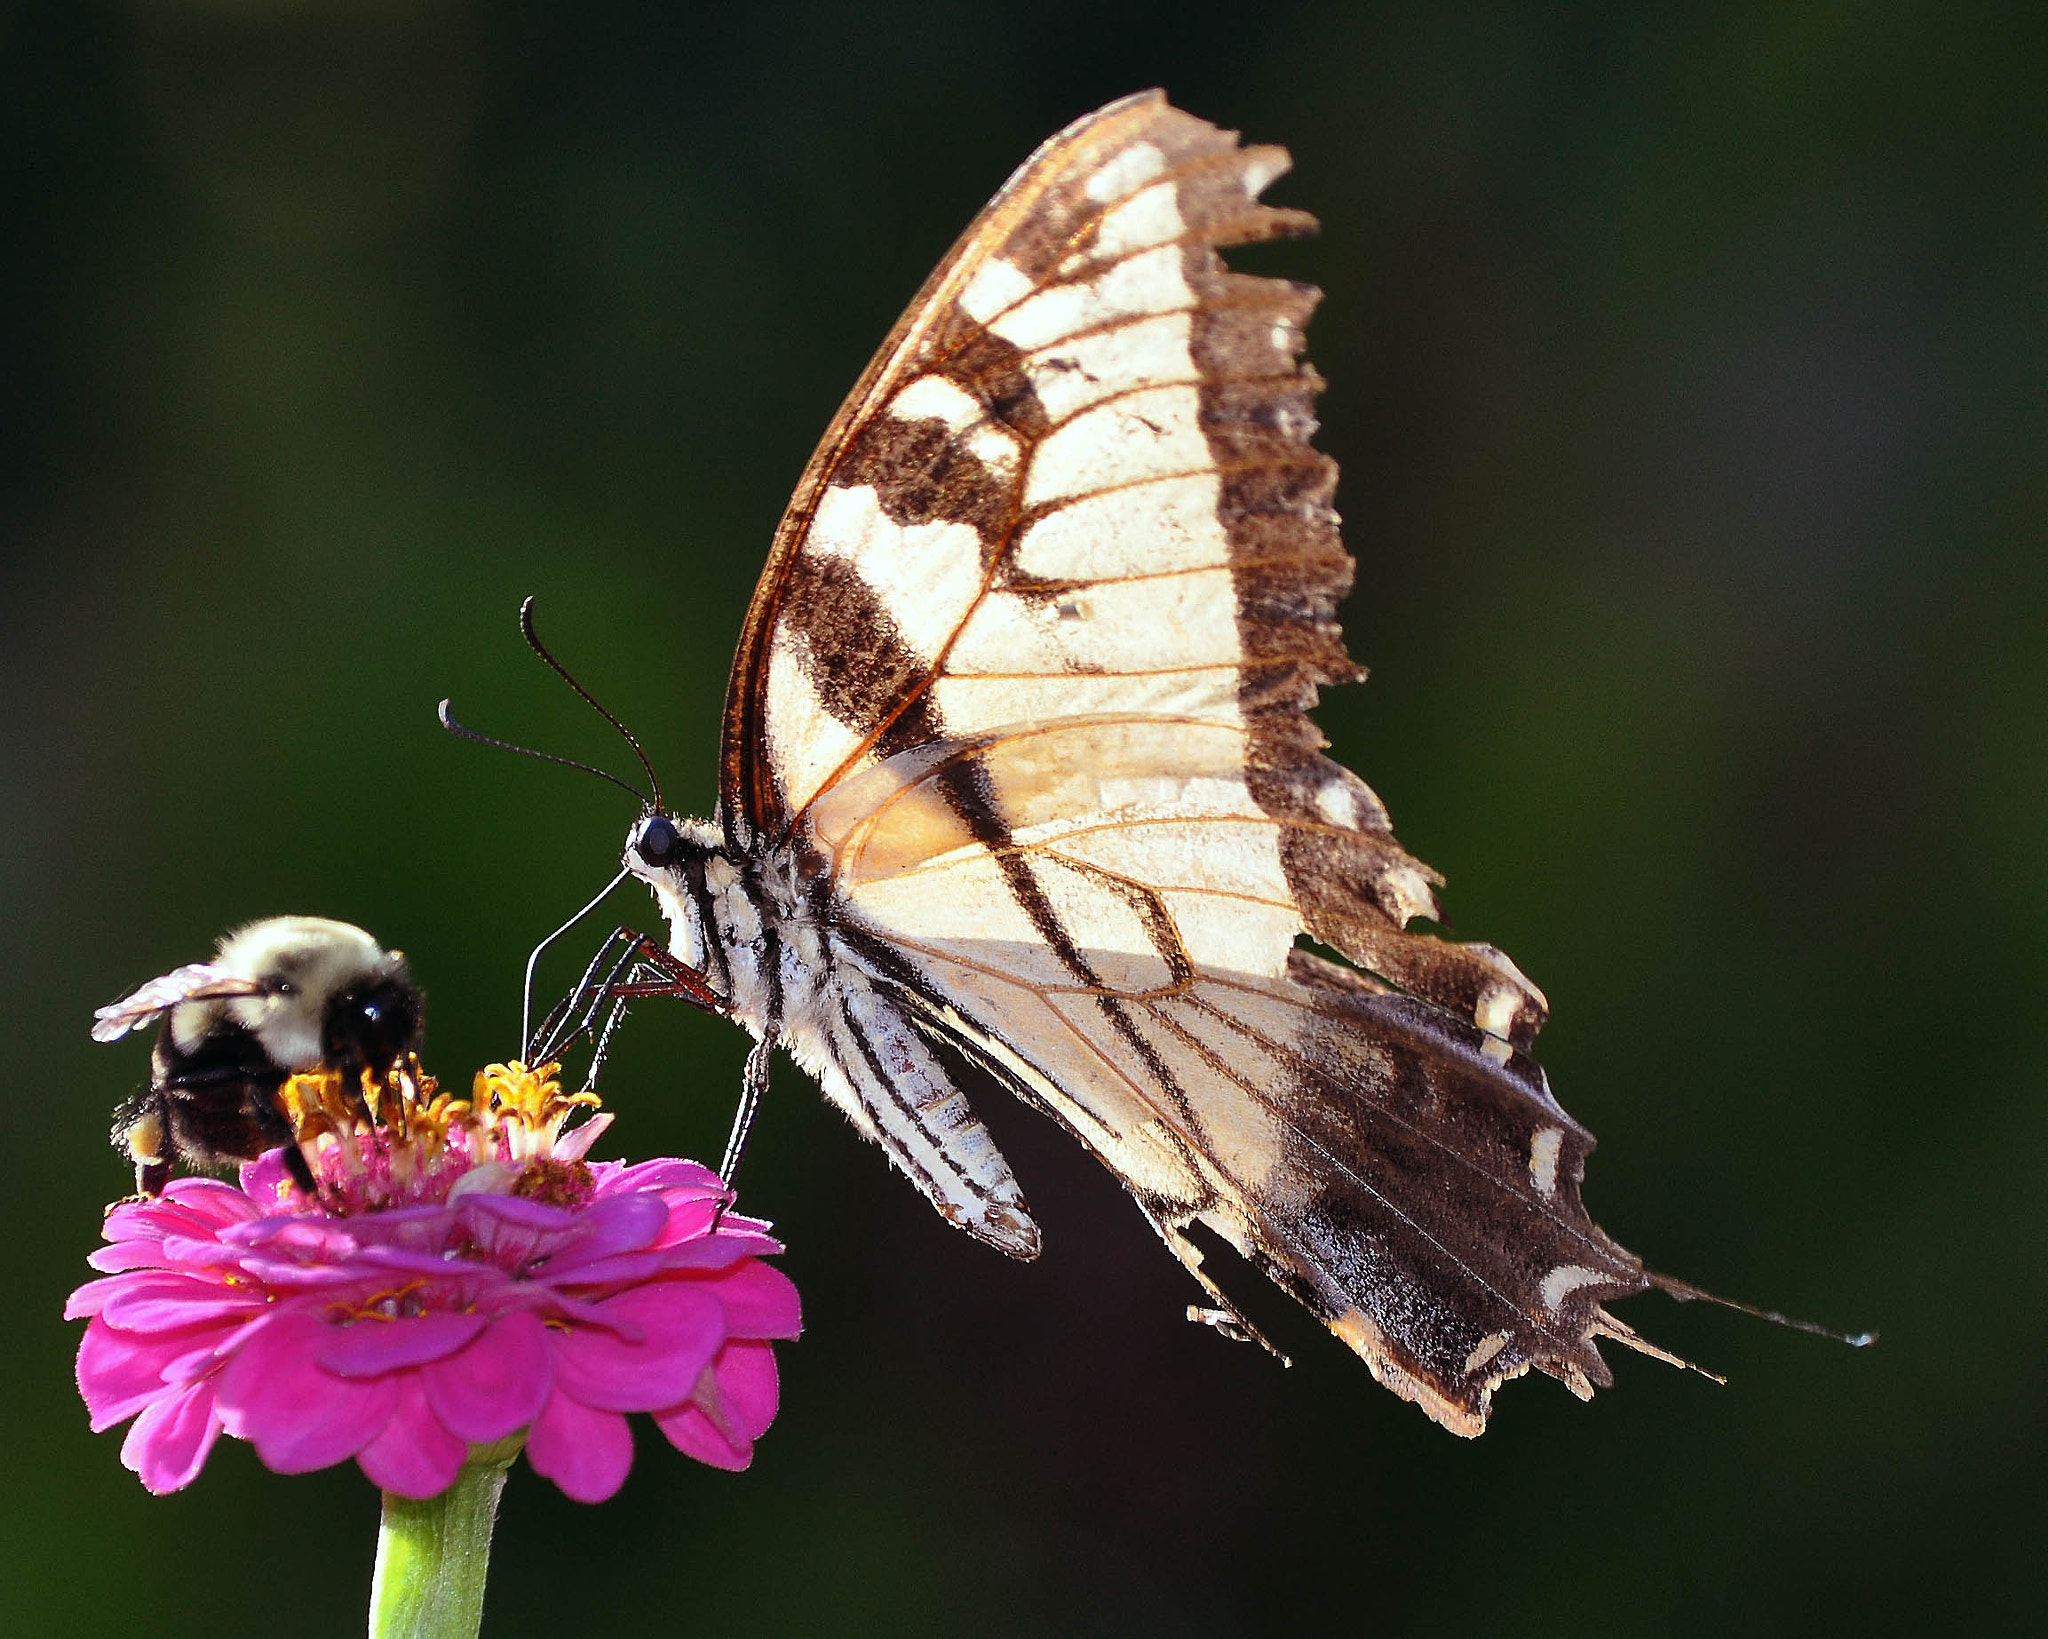 Photograph Buzz off!  by Kristen Maiden on 500px